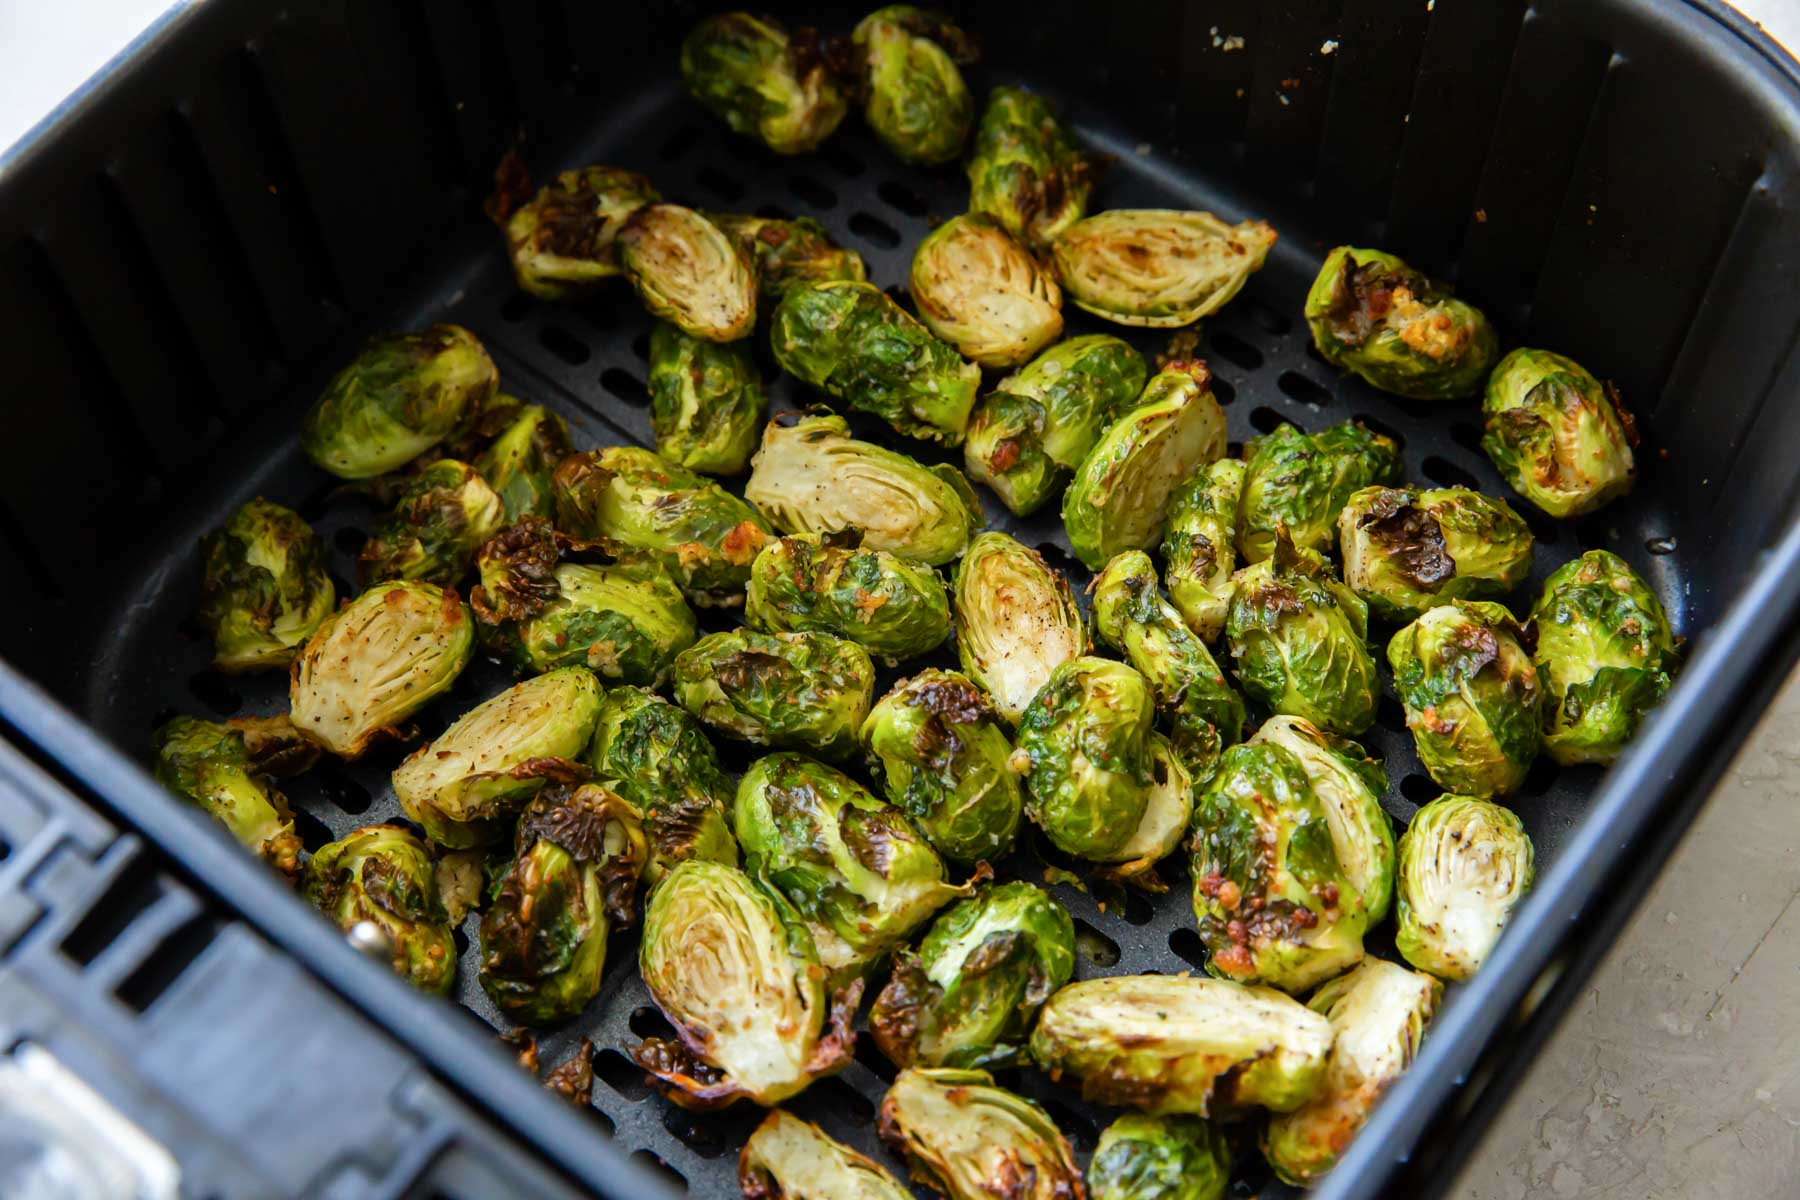 crispy brussels sprouts in air fryer after cooking